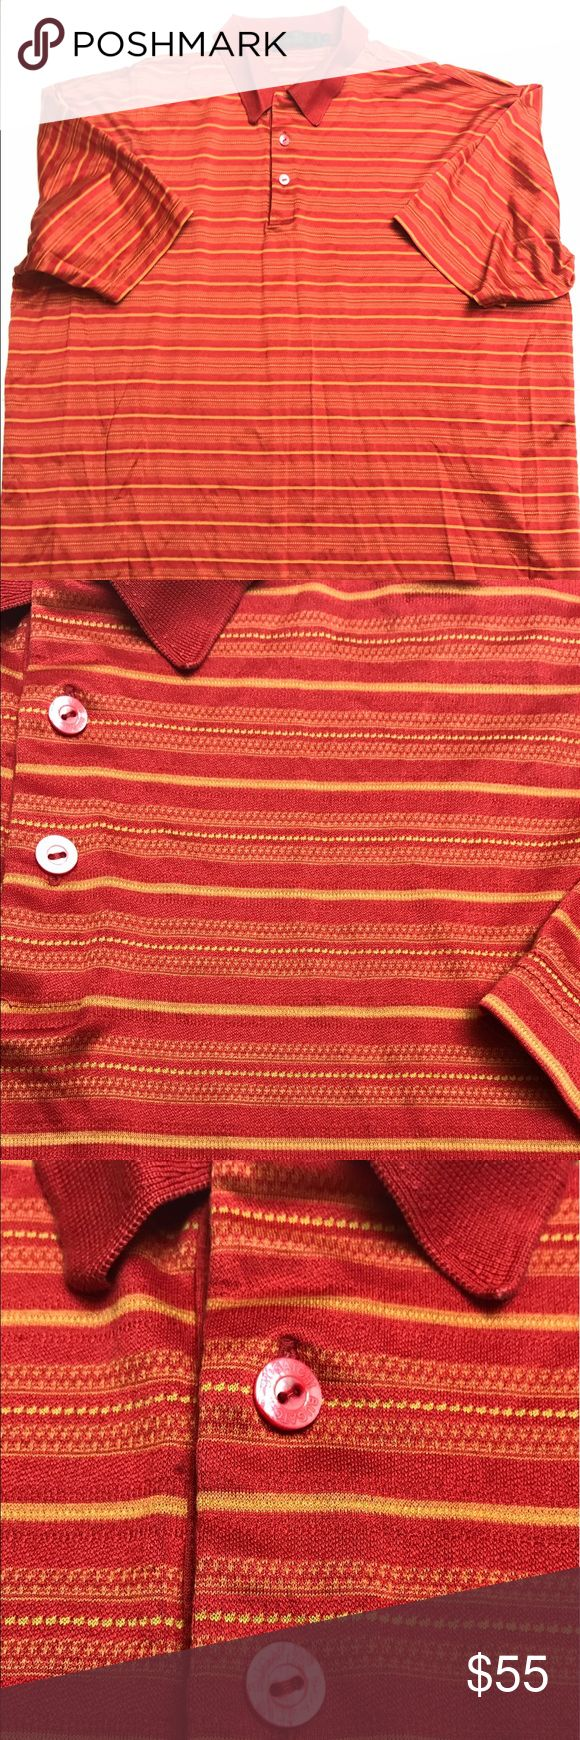 """Bugatchi Uomo Mercerized Cotton Polo Shirt XXL Bugatchi Uomo Mercerized Cotton Red With Gold Striped Polo Shirt Men's Size XXL Pre-owned  Clean with no holes or stains from a pet and smoke free environment.  Size: XXL  Shoulders: 22""""  Chest (pit to pit): 25""""  Length: 29""""  We make an effort to inspect our items before posting and strive to ship quality items. Please be sure to review all pictures when purchasing and feel free to ask any questions. Thanks! Bugatchi Shirts Polos"""